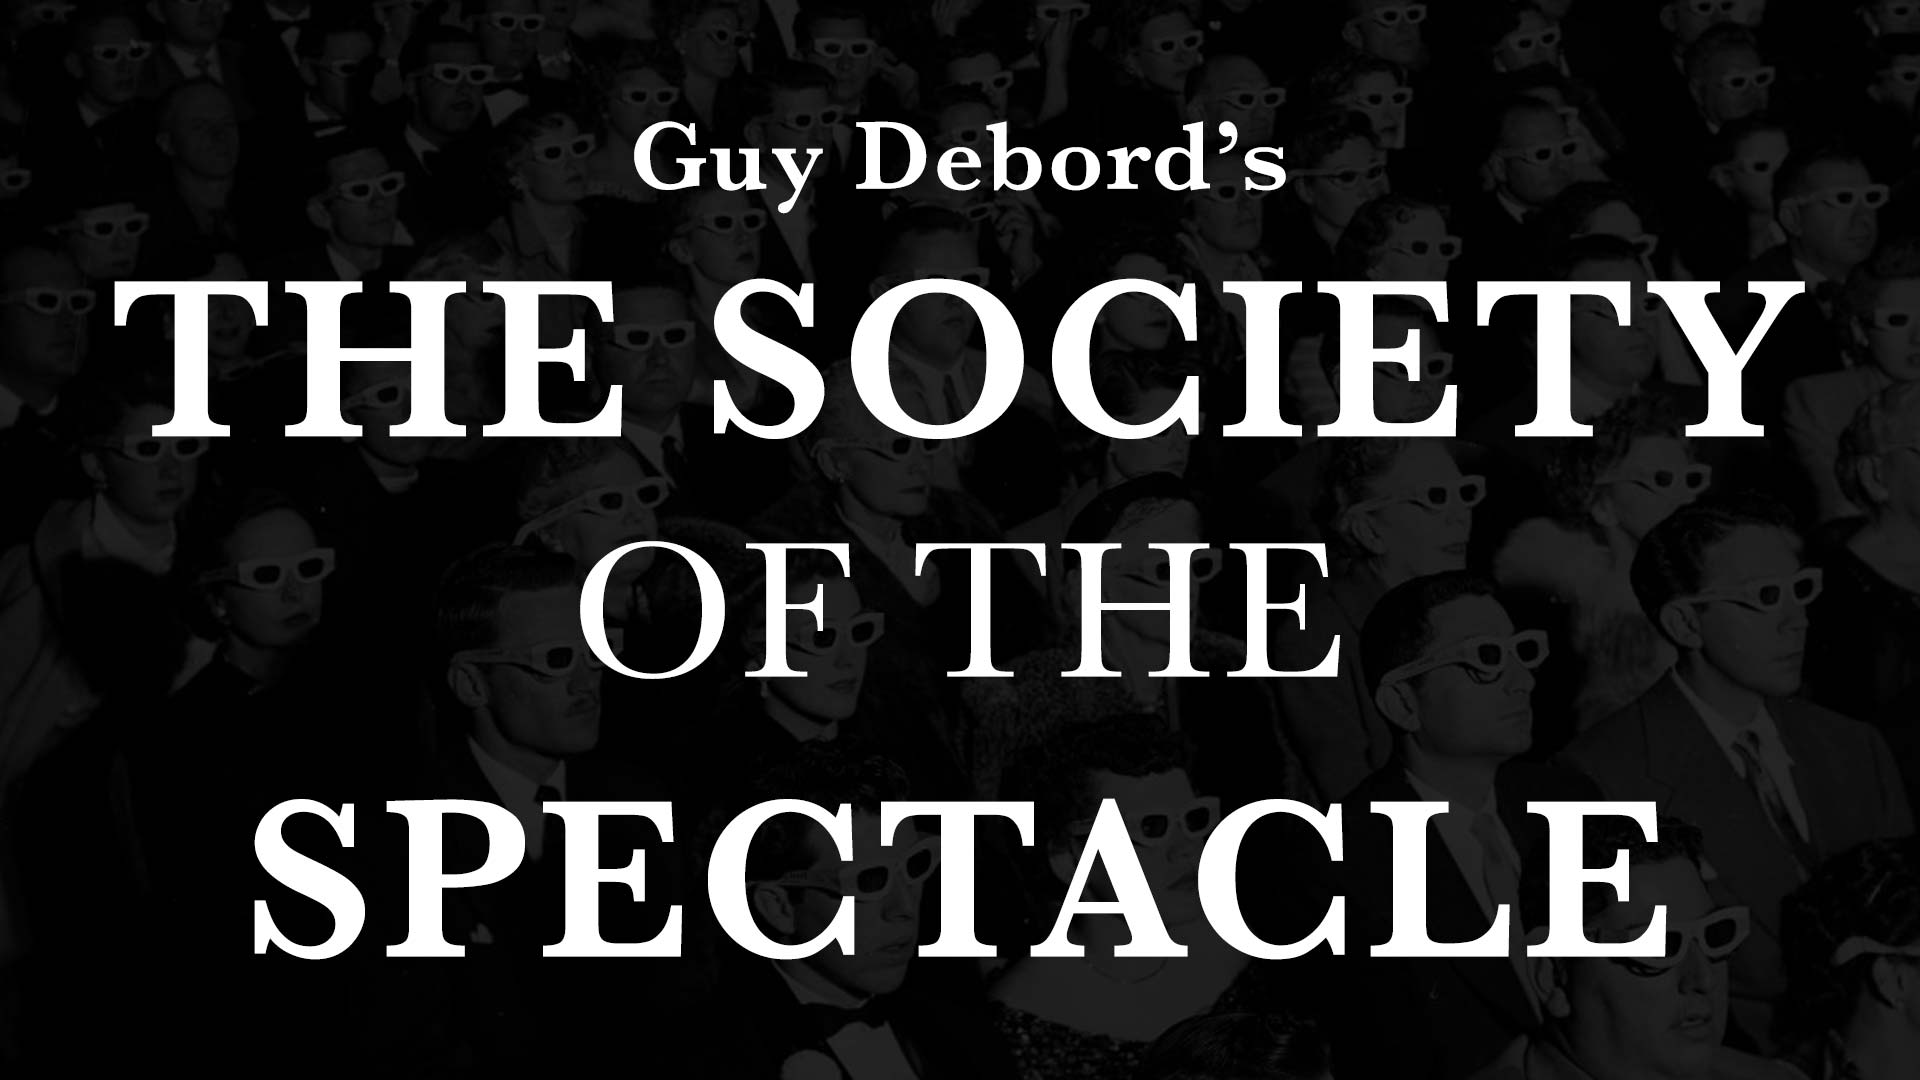 The Society of the Spectacle - image